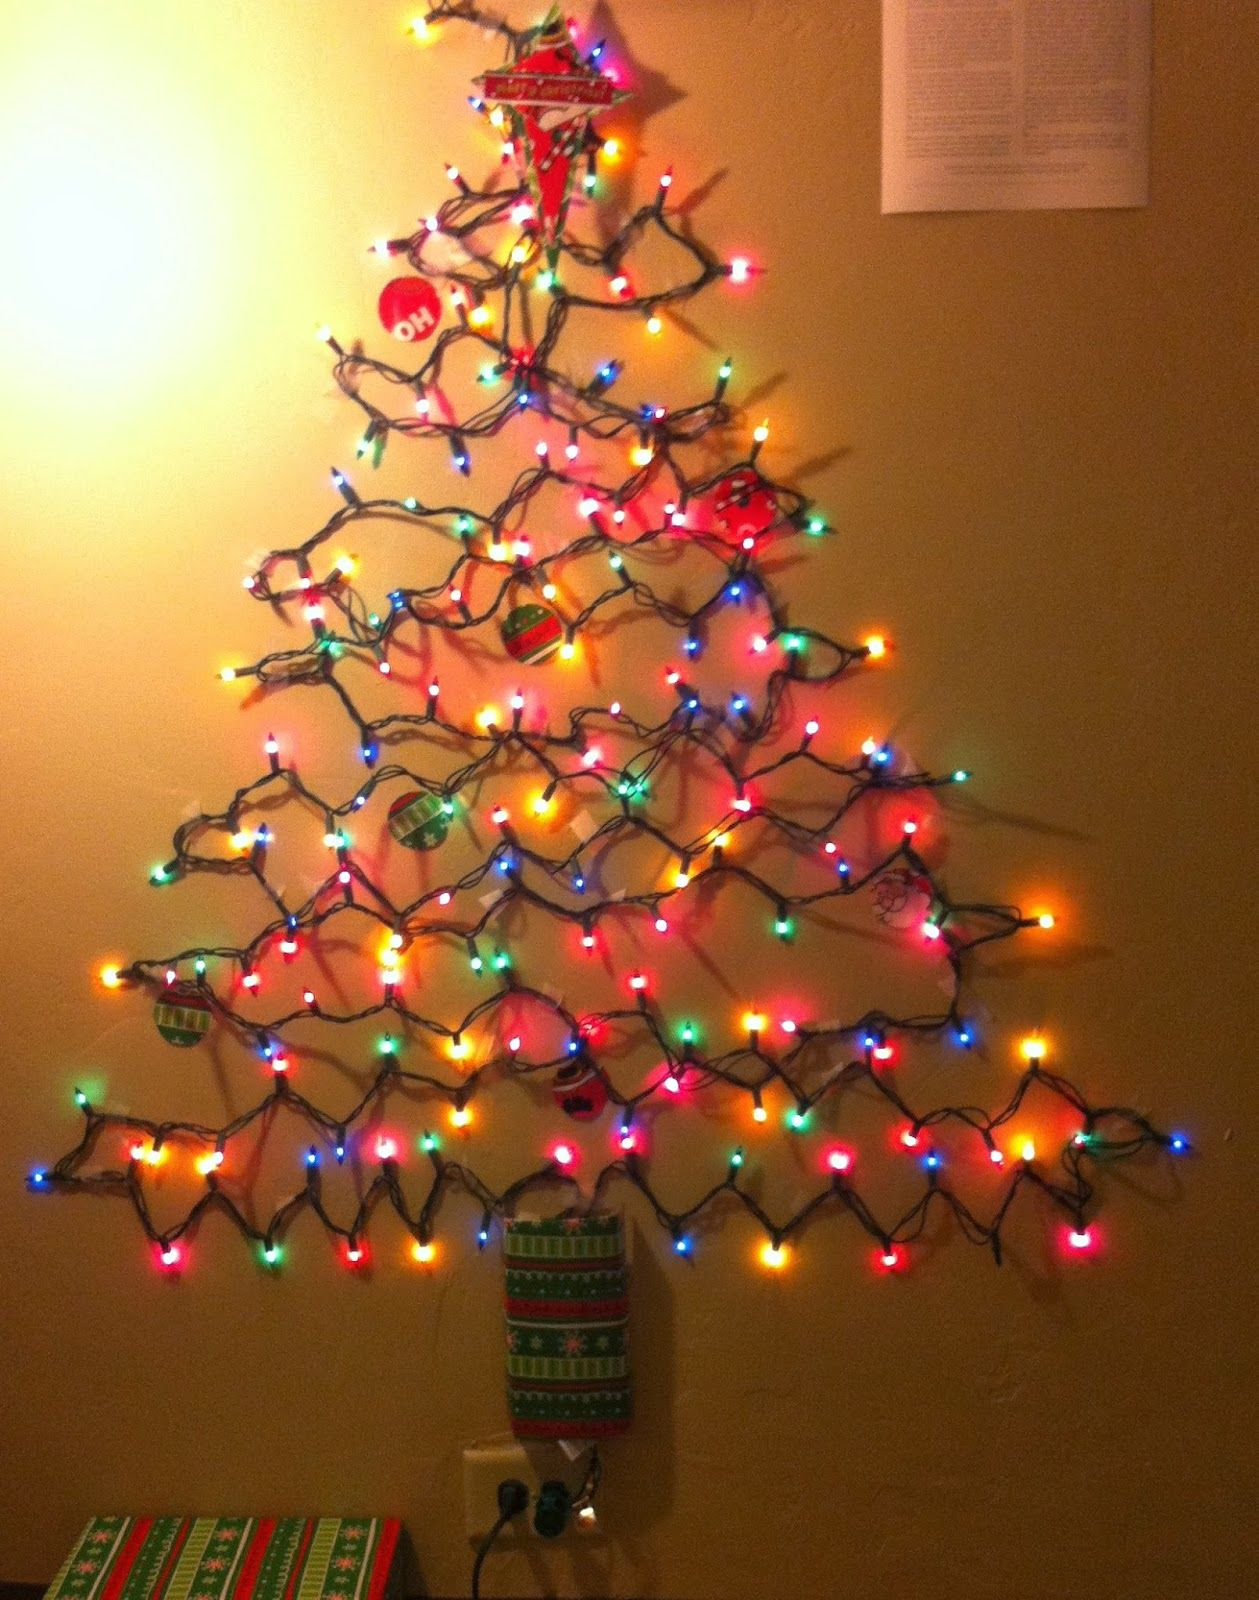 Photo Christmas Tree Made Of Lights On Wall Images Christmas Tree Made Of Lights Wall Christmas Tree Alternative Christmas Tree